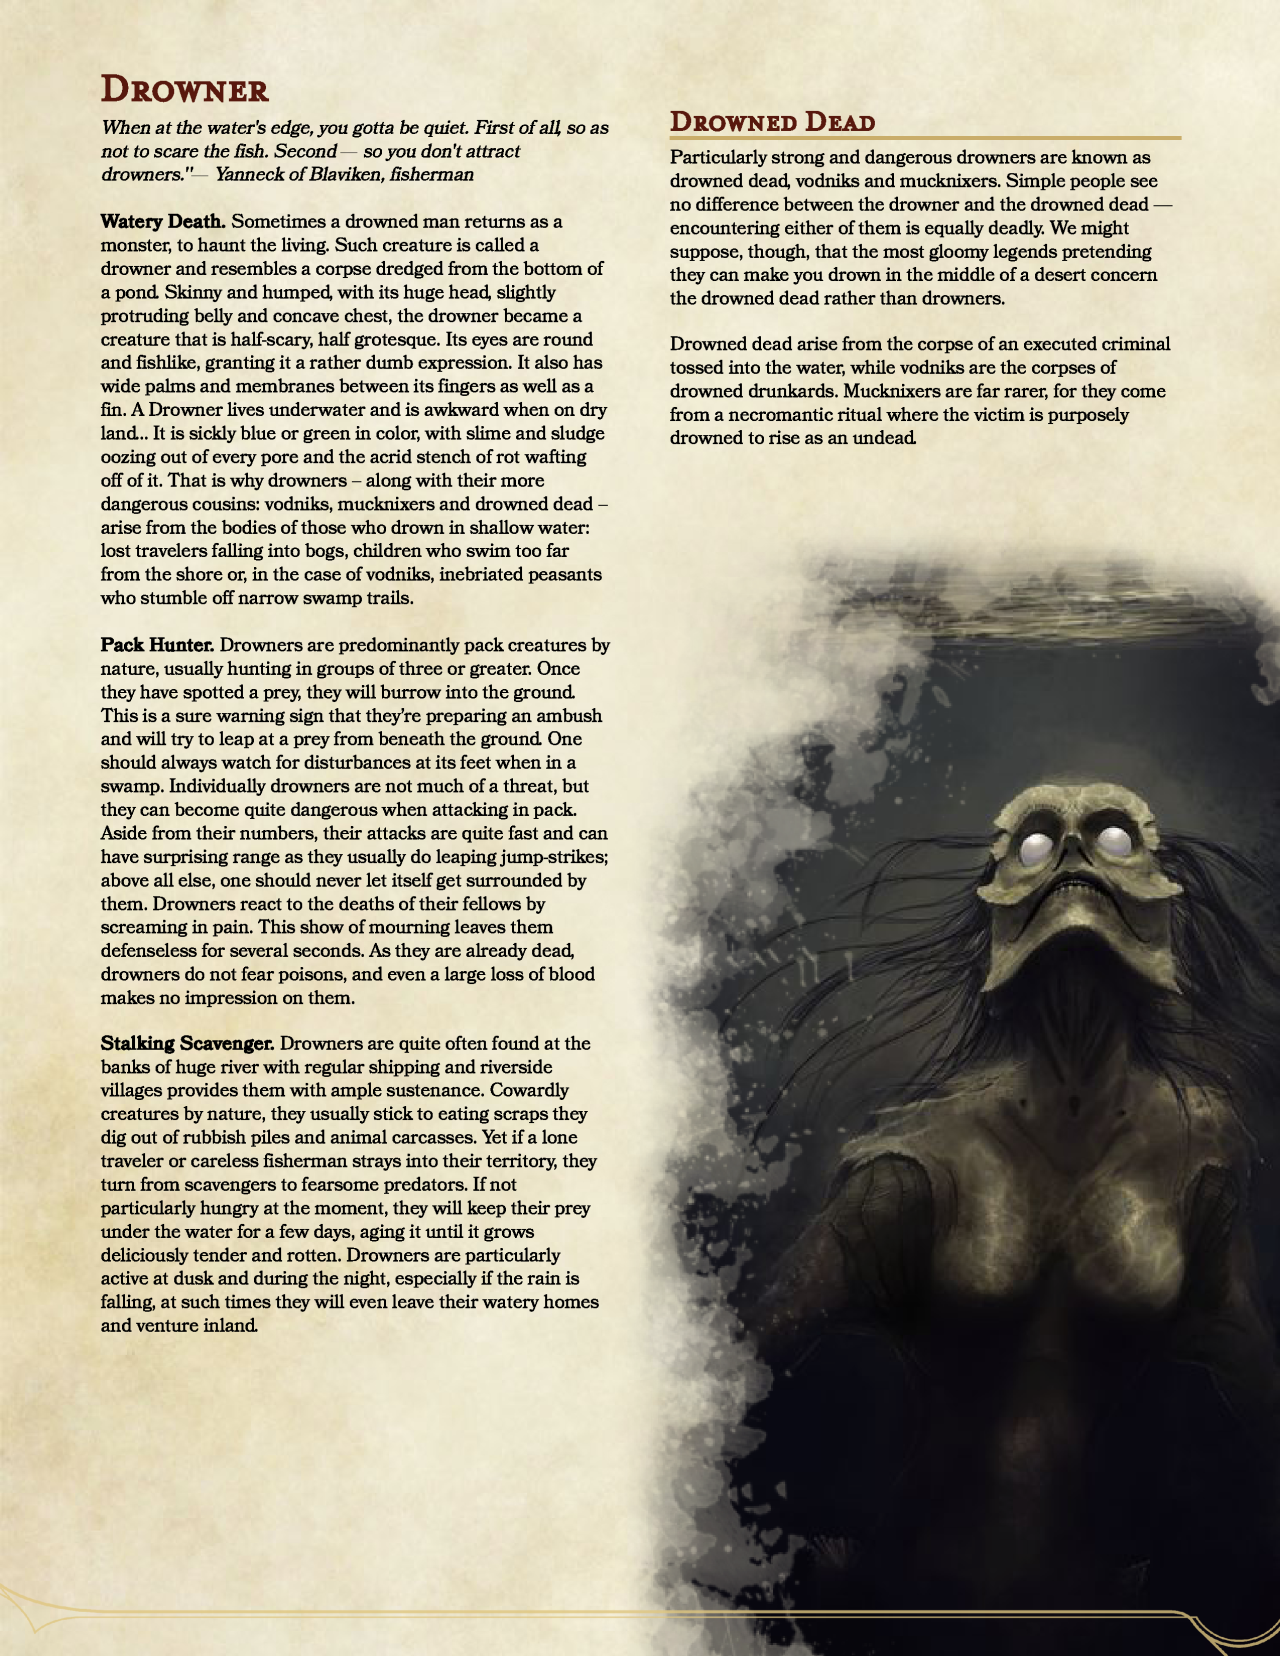 DnD 5e Homebrew | Magical Beasts in 2019 | Dnd 5e homebrew, Dungeons